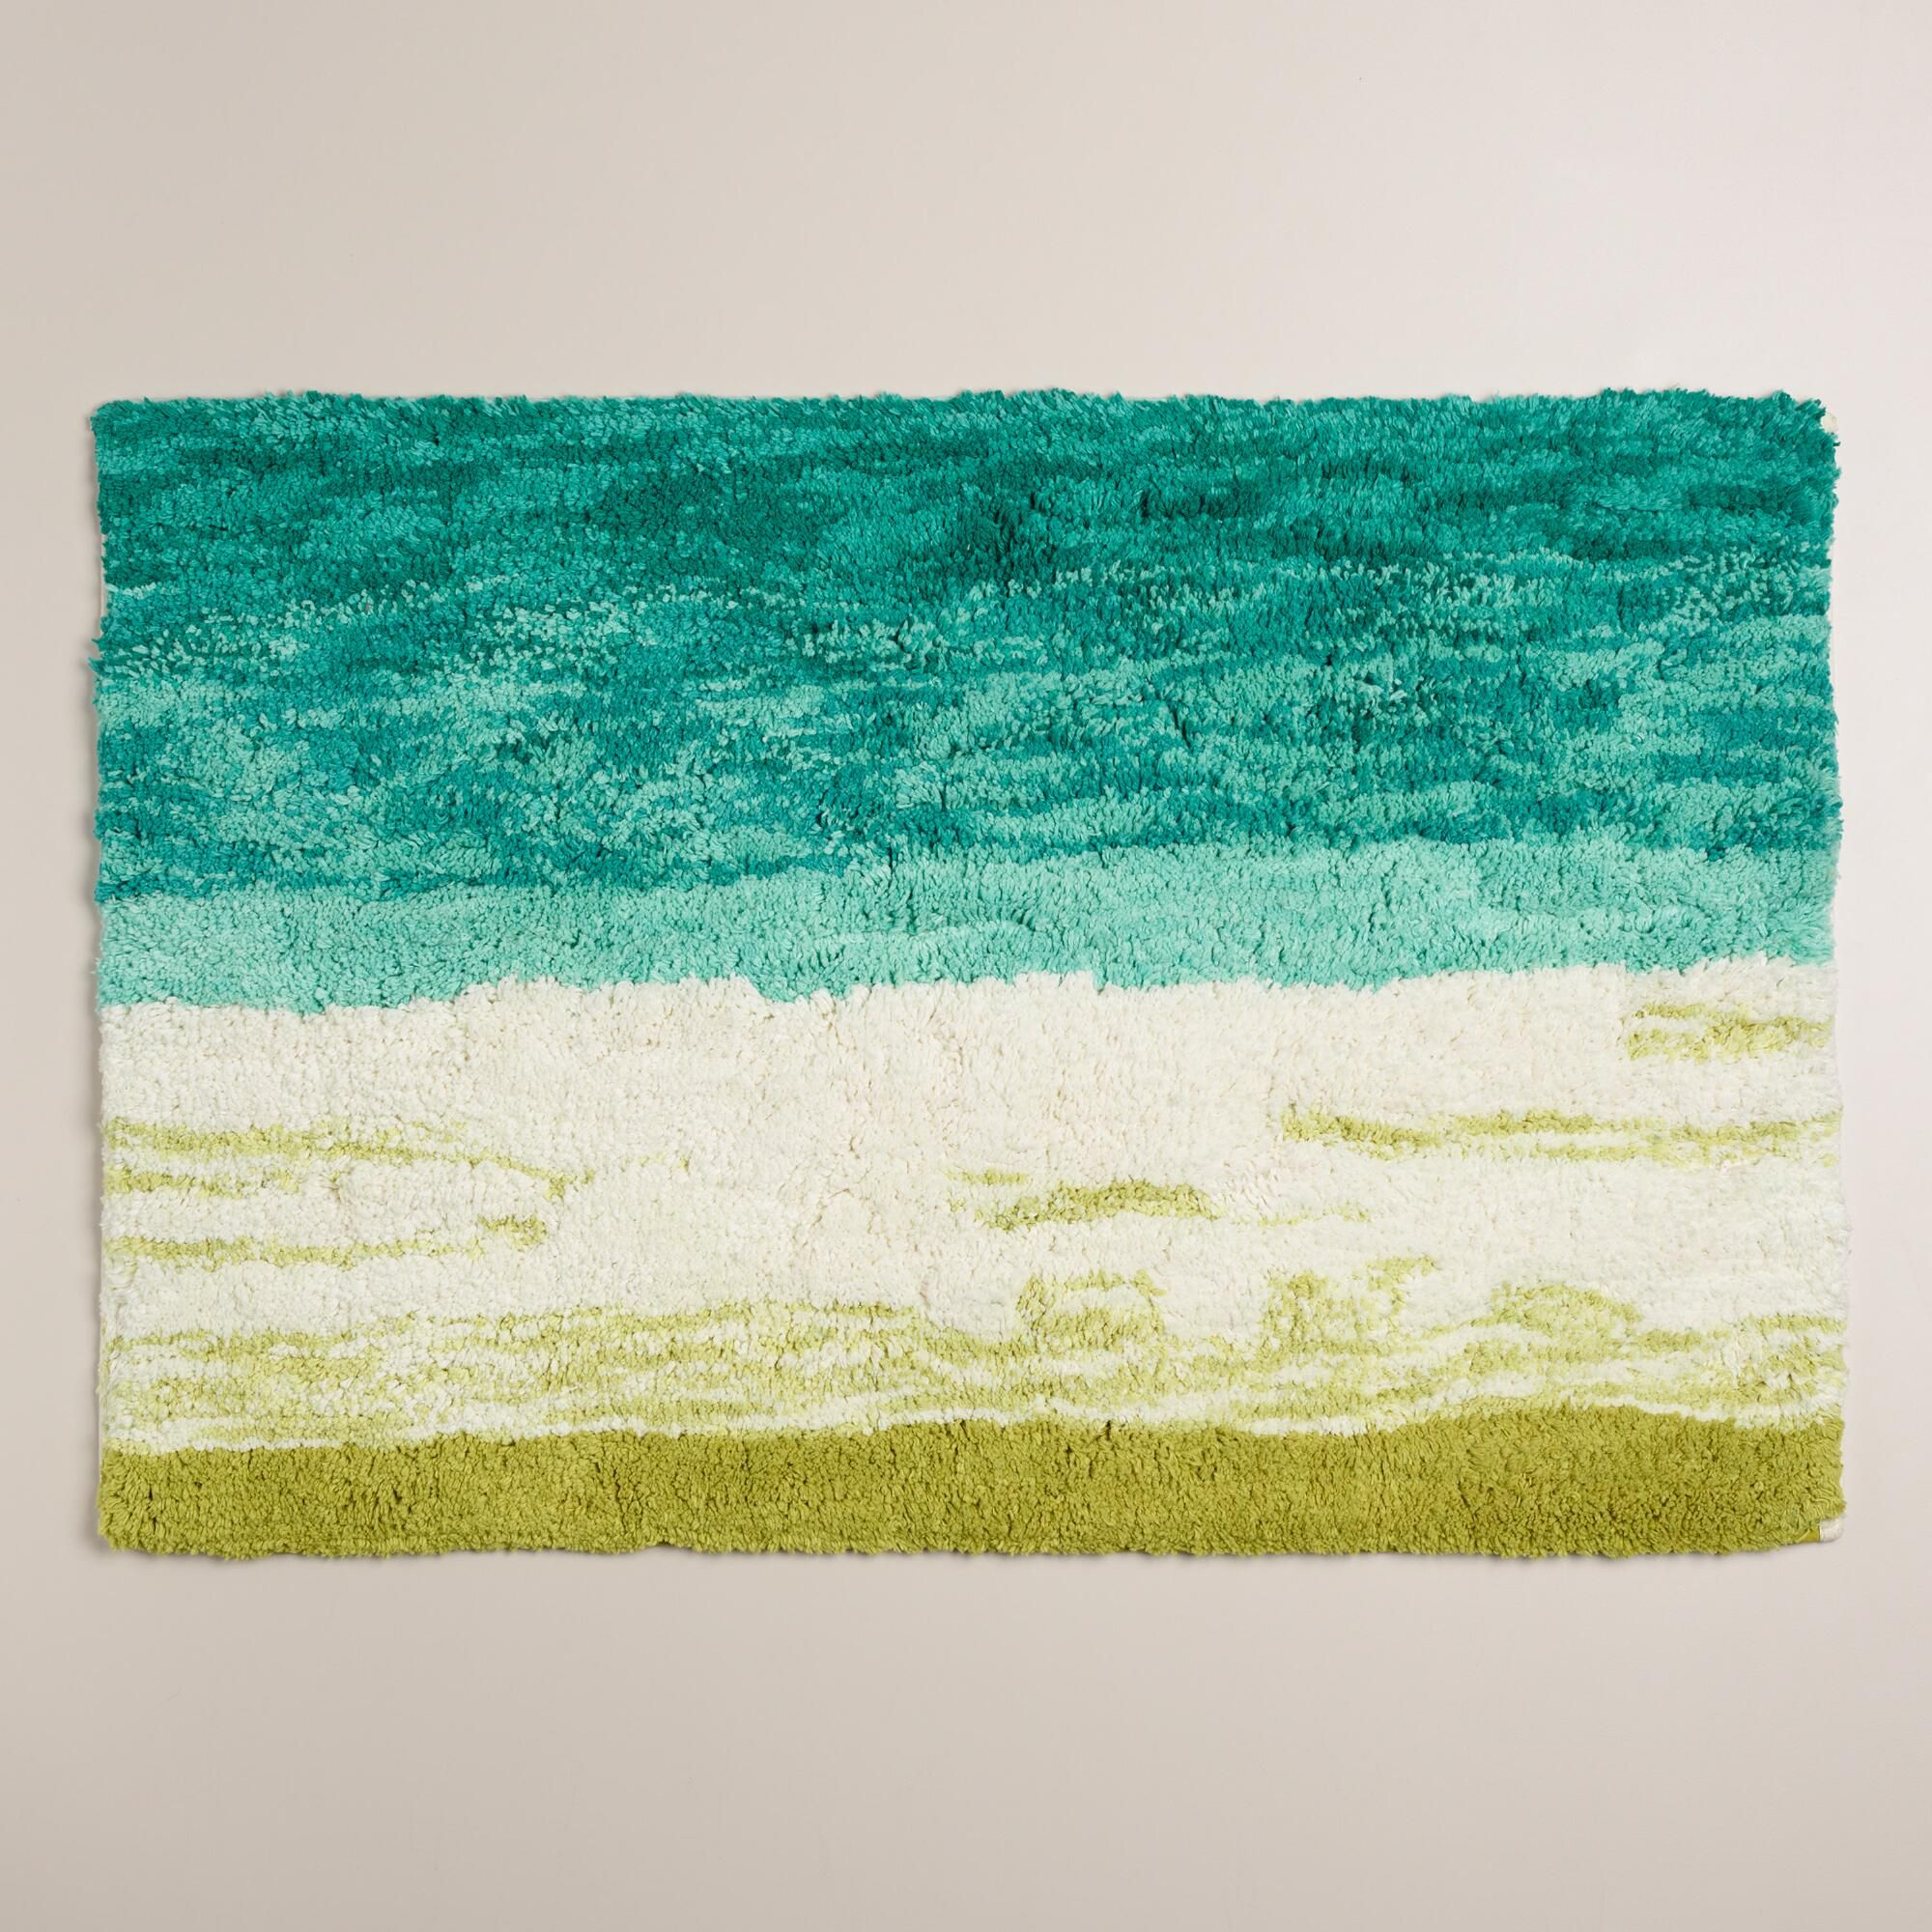 Sea Blue And Moss Ombre Tufted Bath Mat Bath Mat Bath And - Quality bath rugs for bathroom decorating ideas